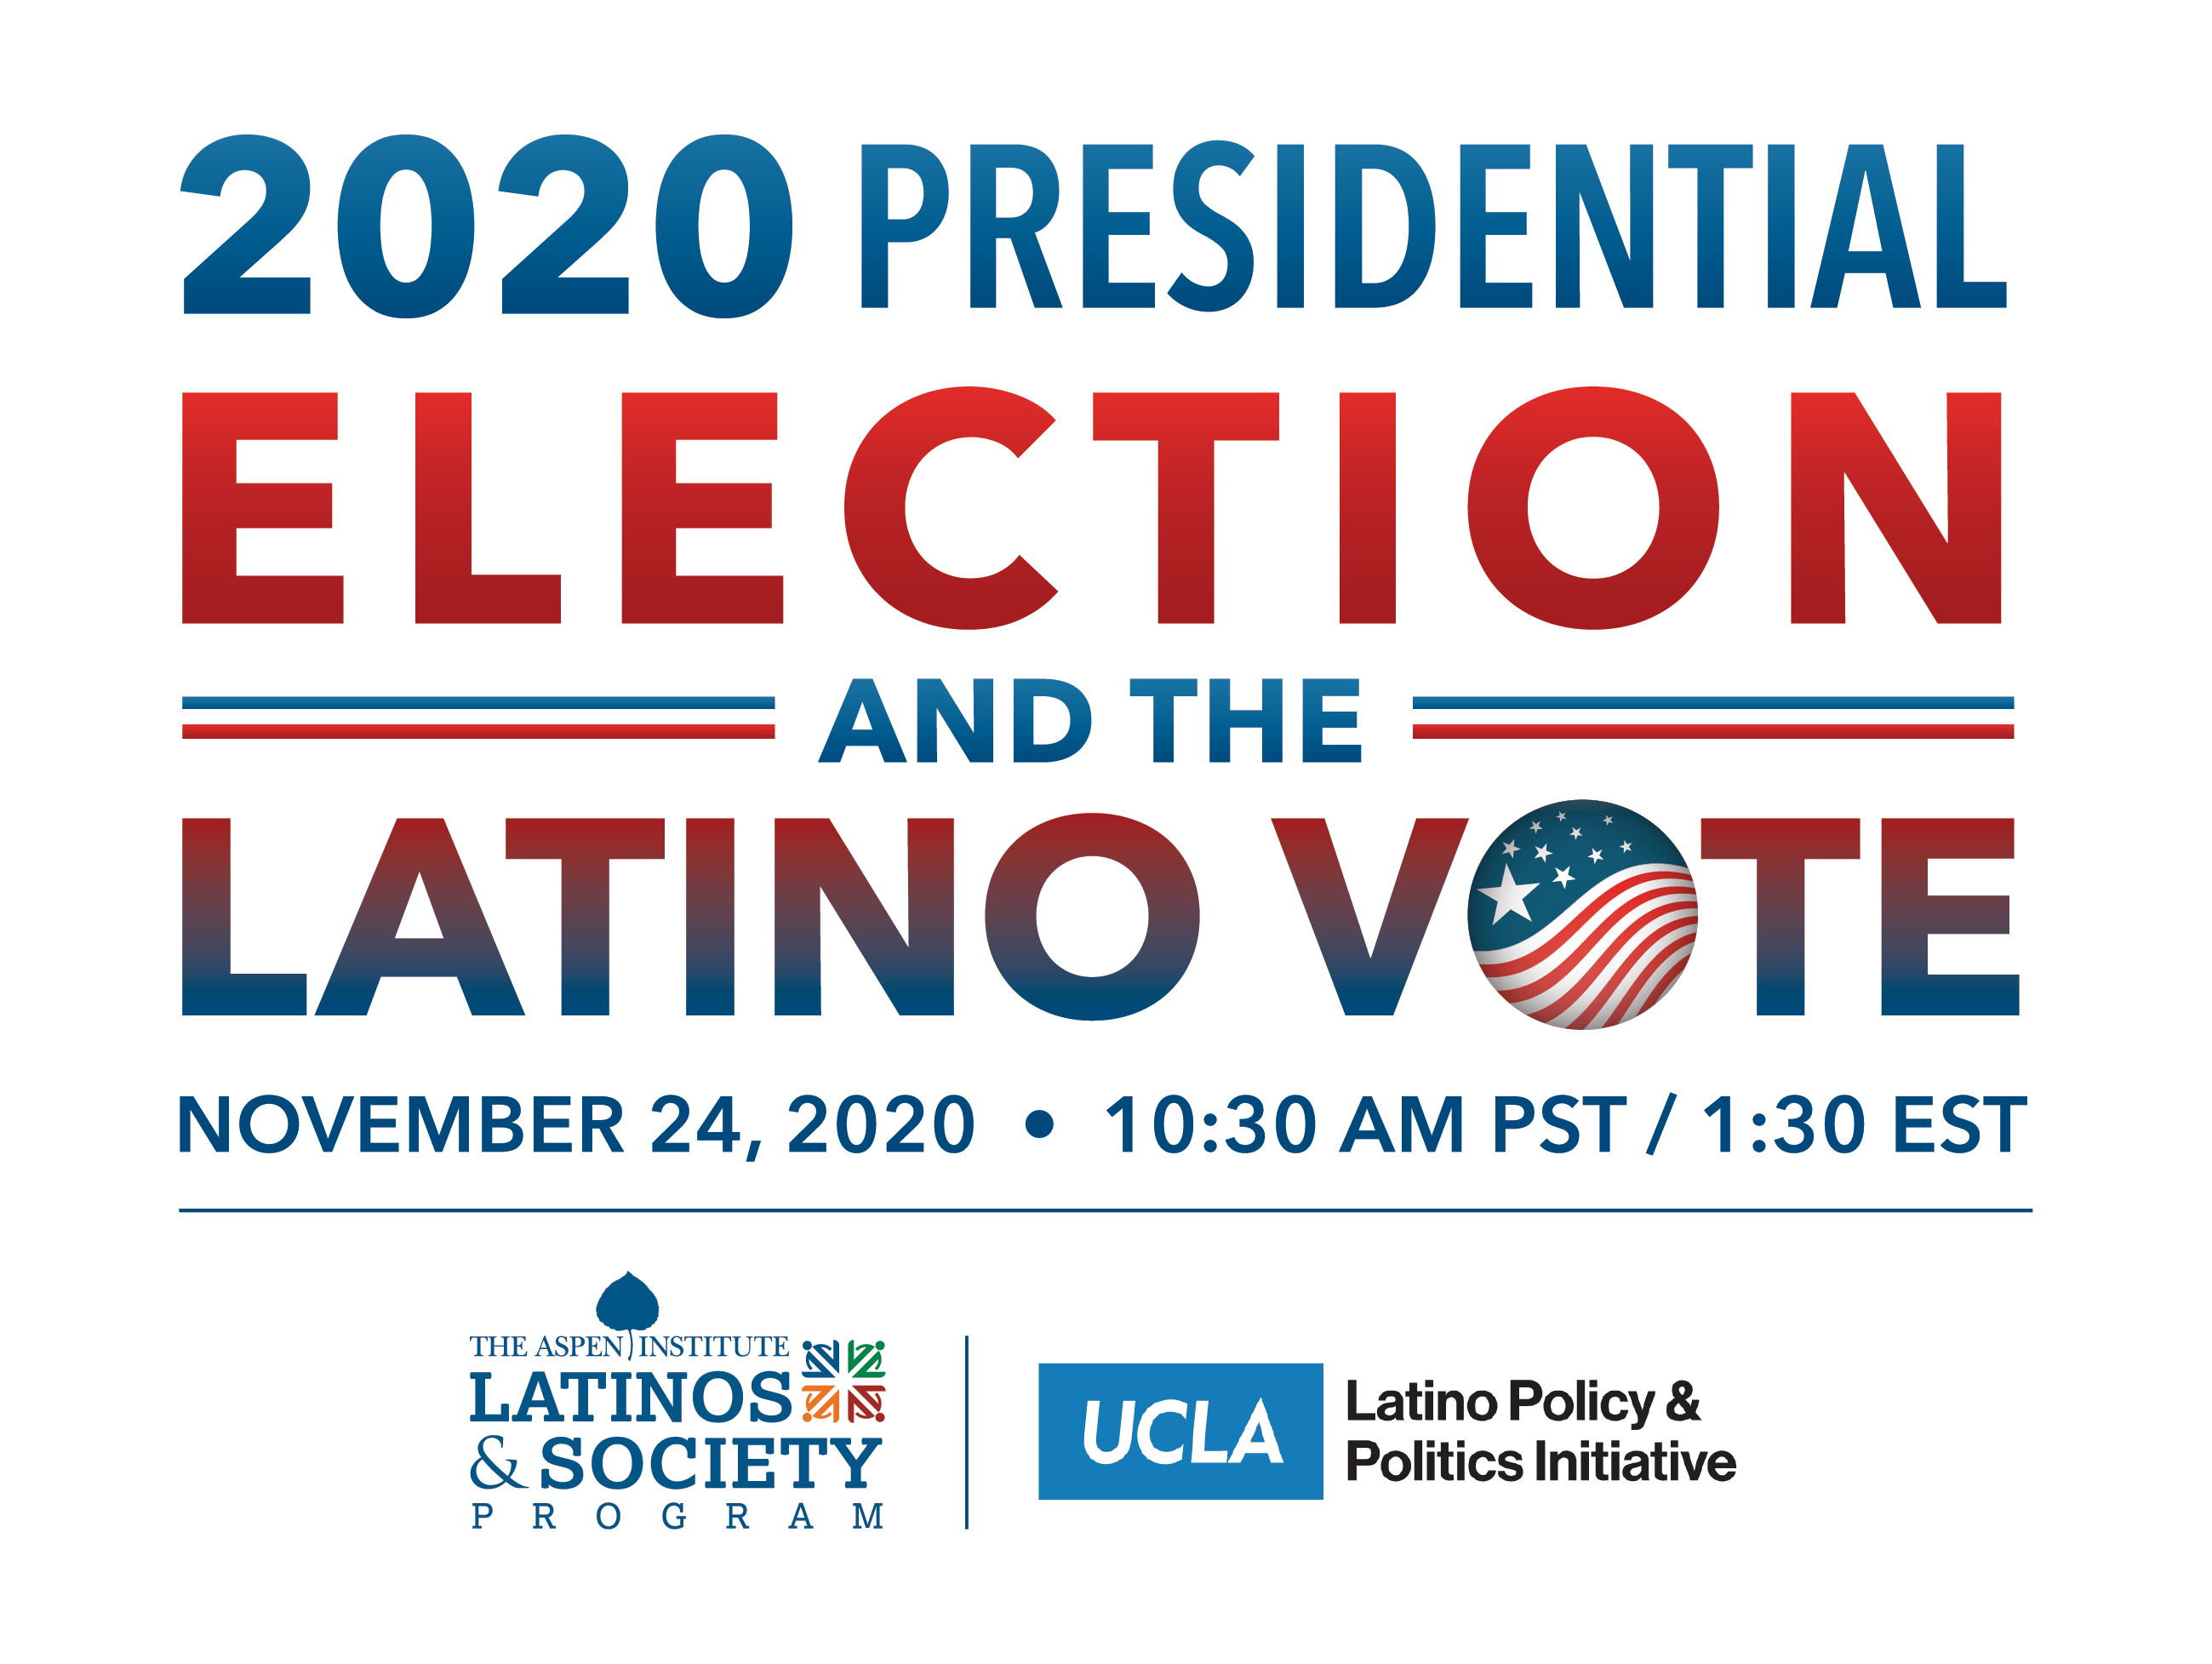 The 2020 Presidential Election & the Latino Vote